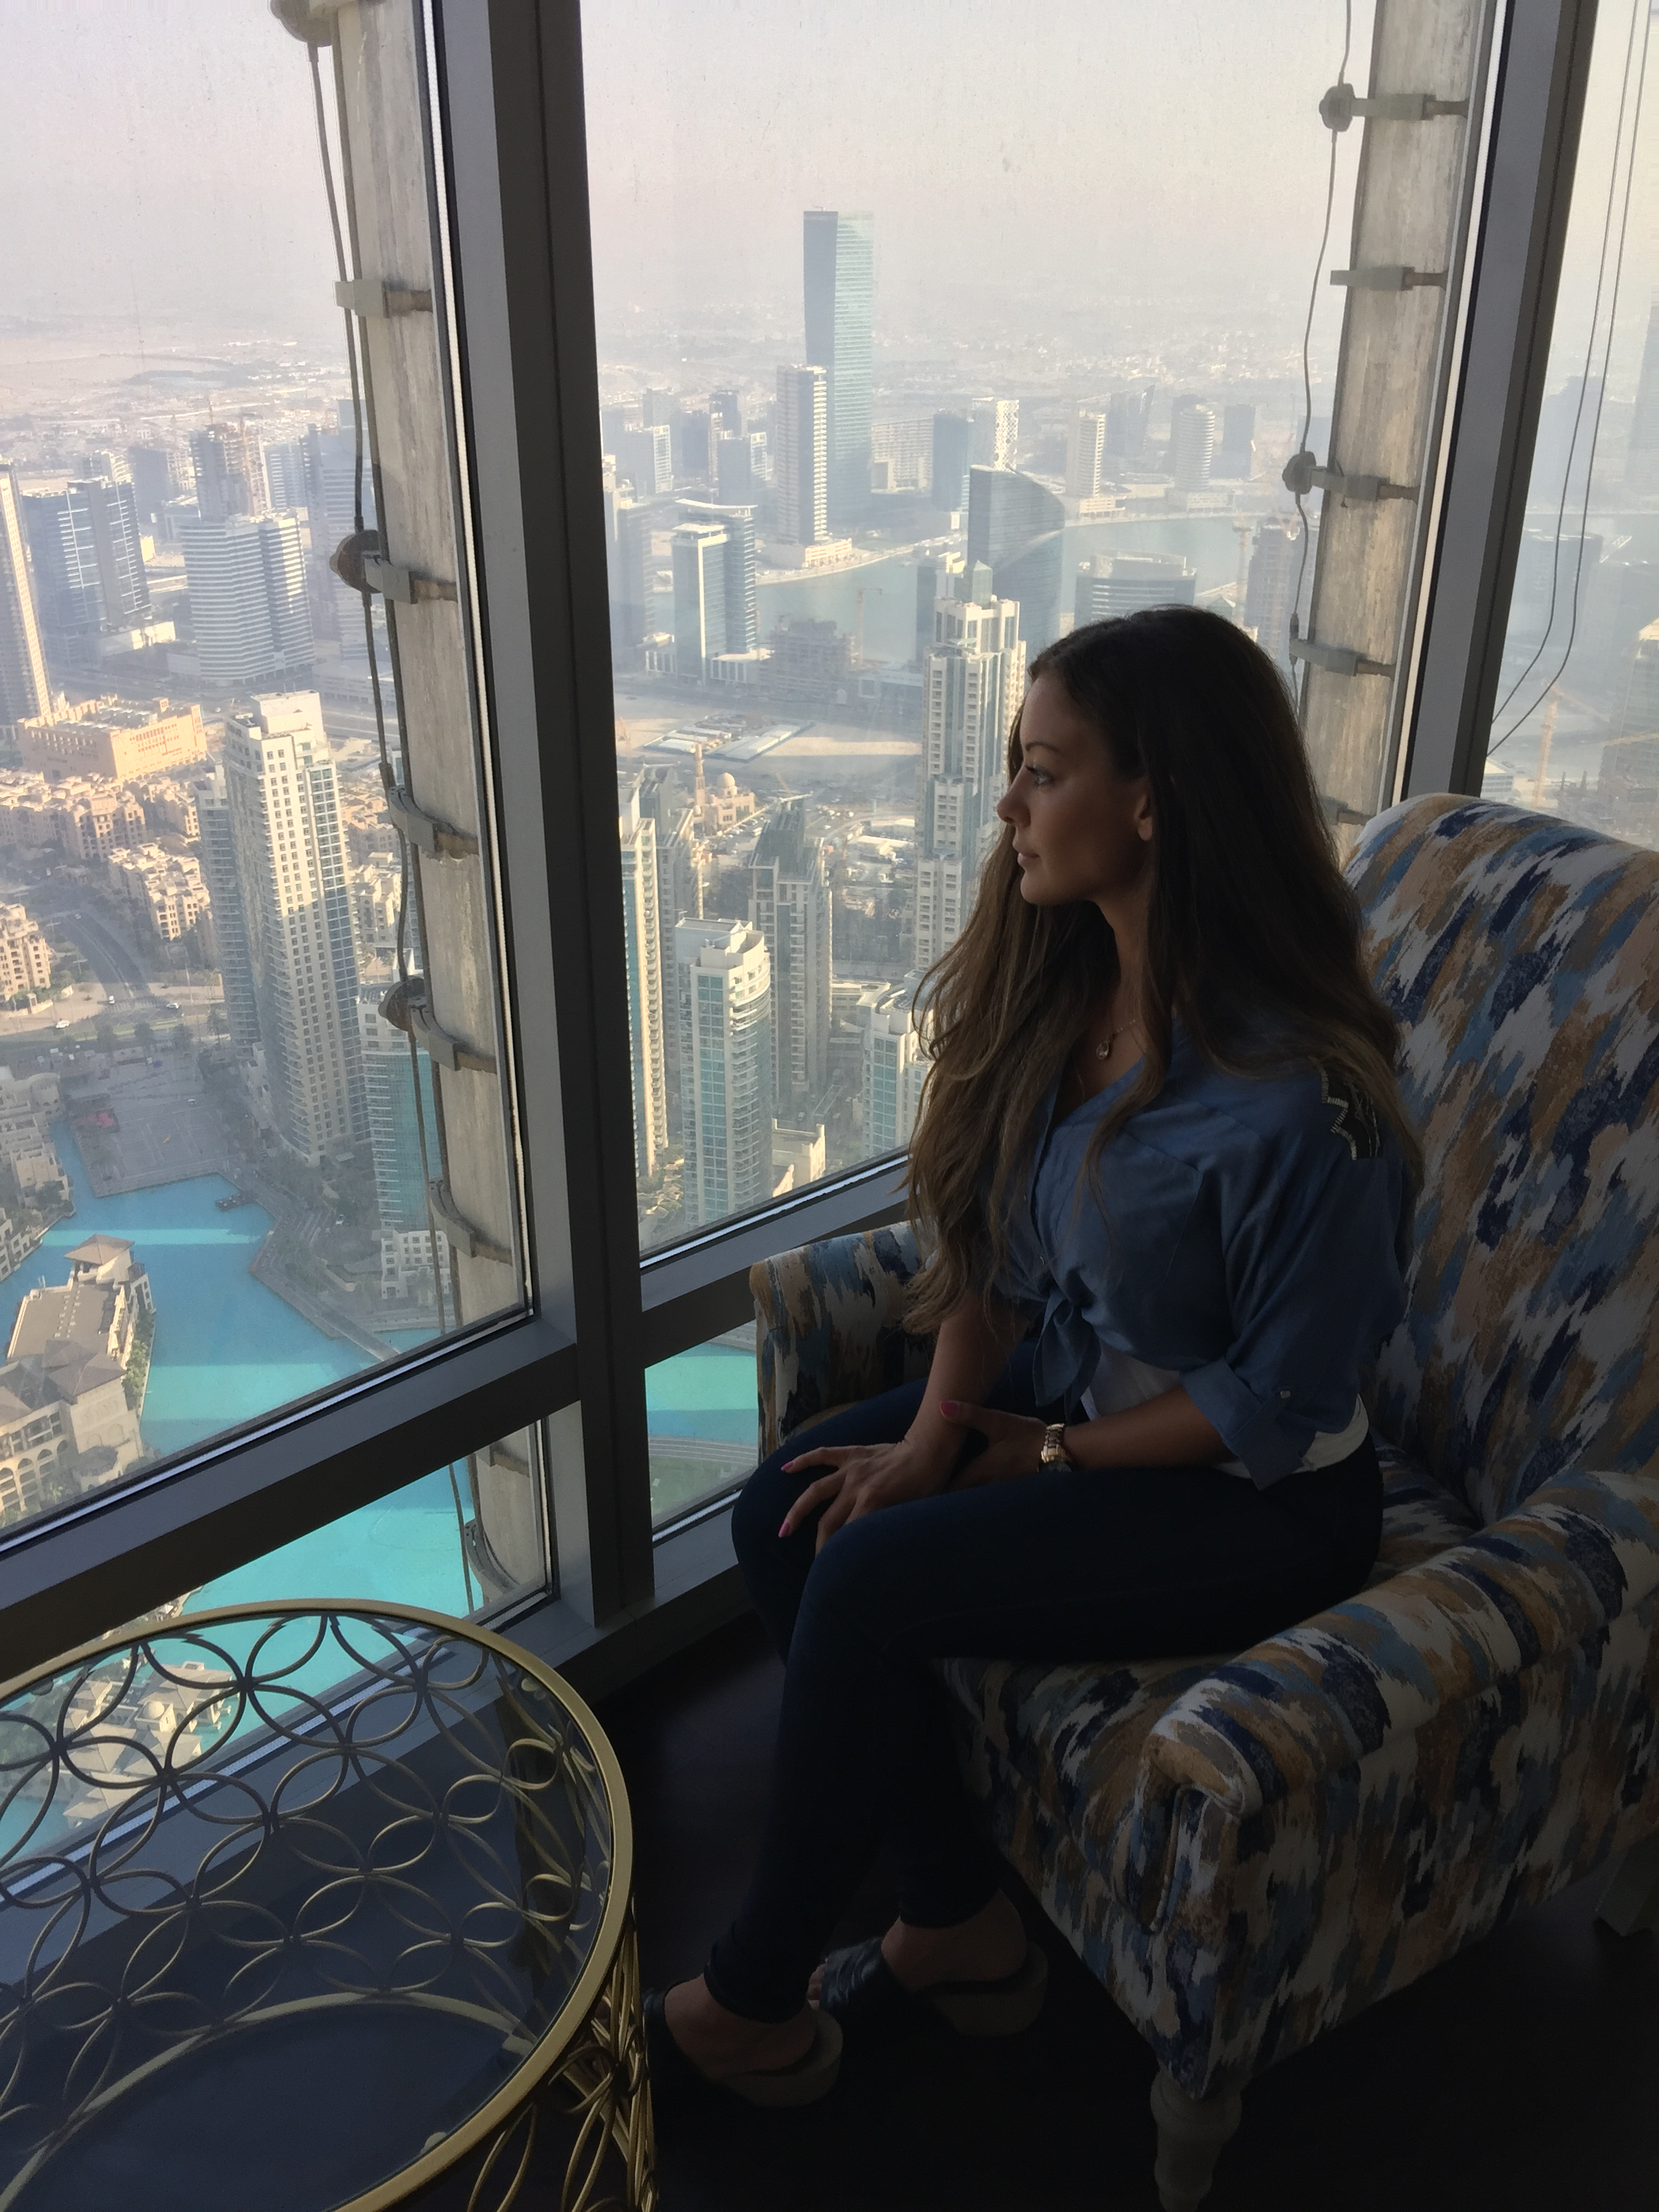 visiting ferrari dubai burj khalifa room travel blogger influencer vlogger carla maria bruno advantures.jpg